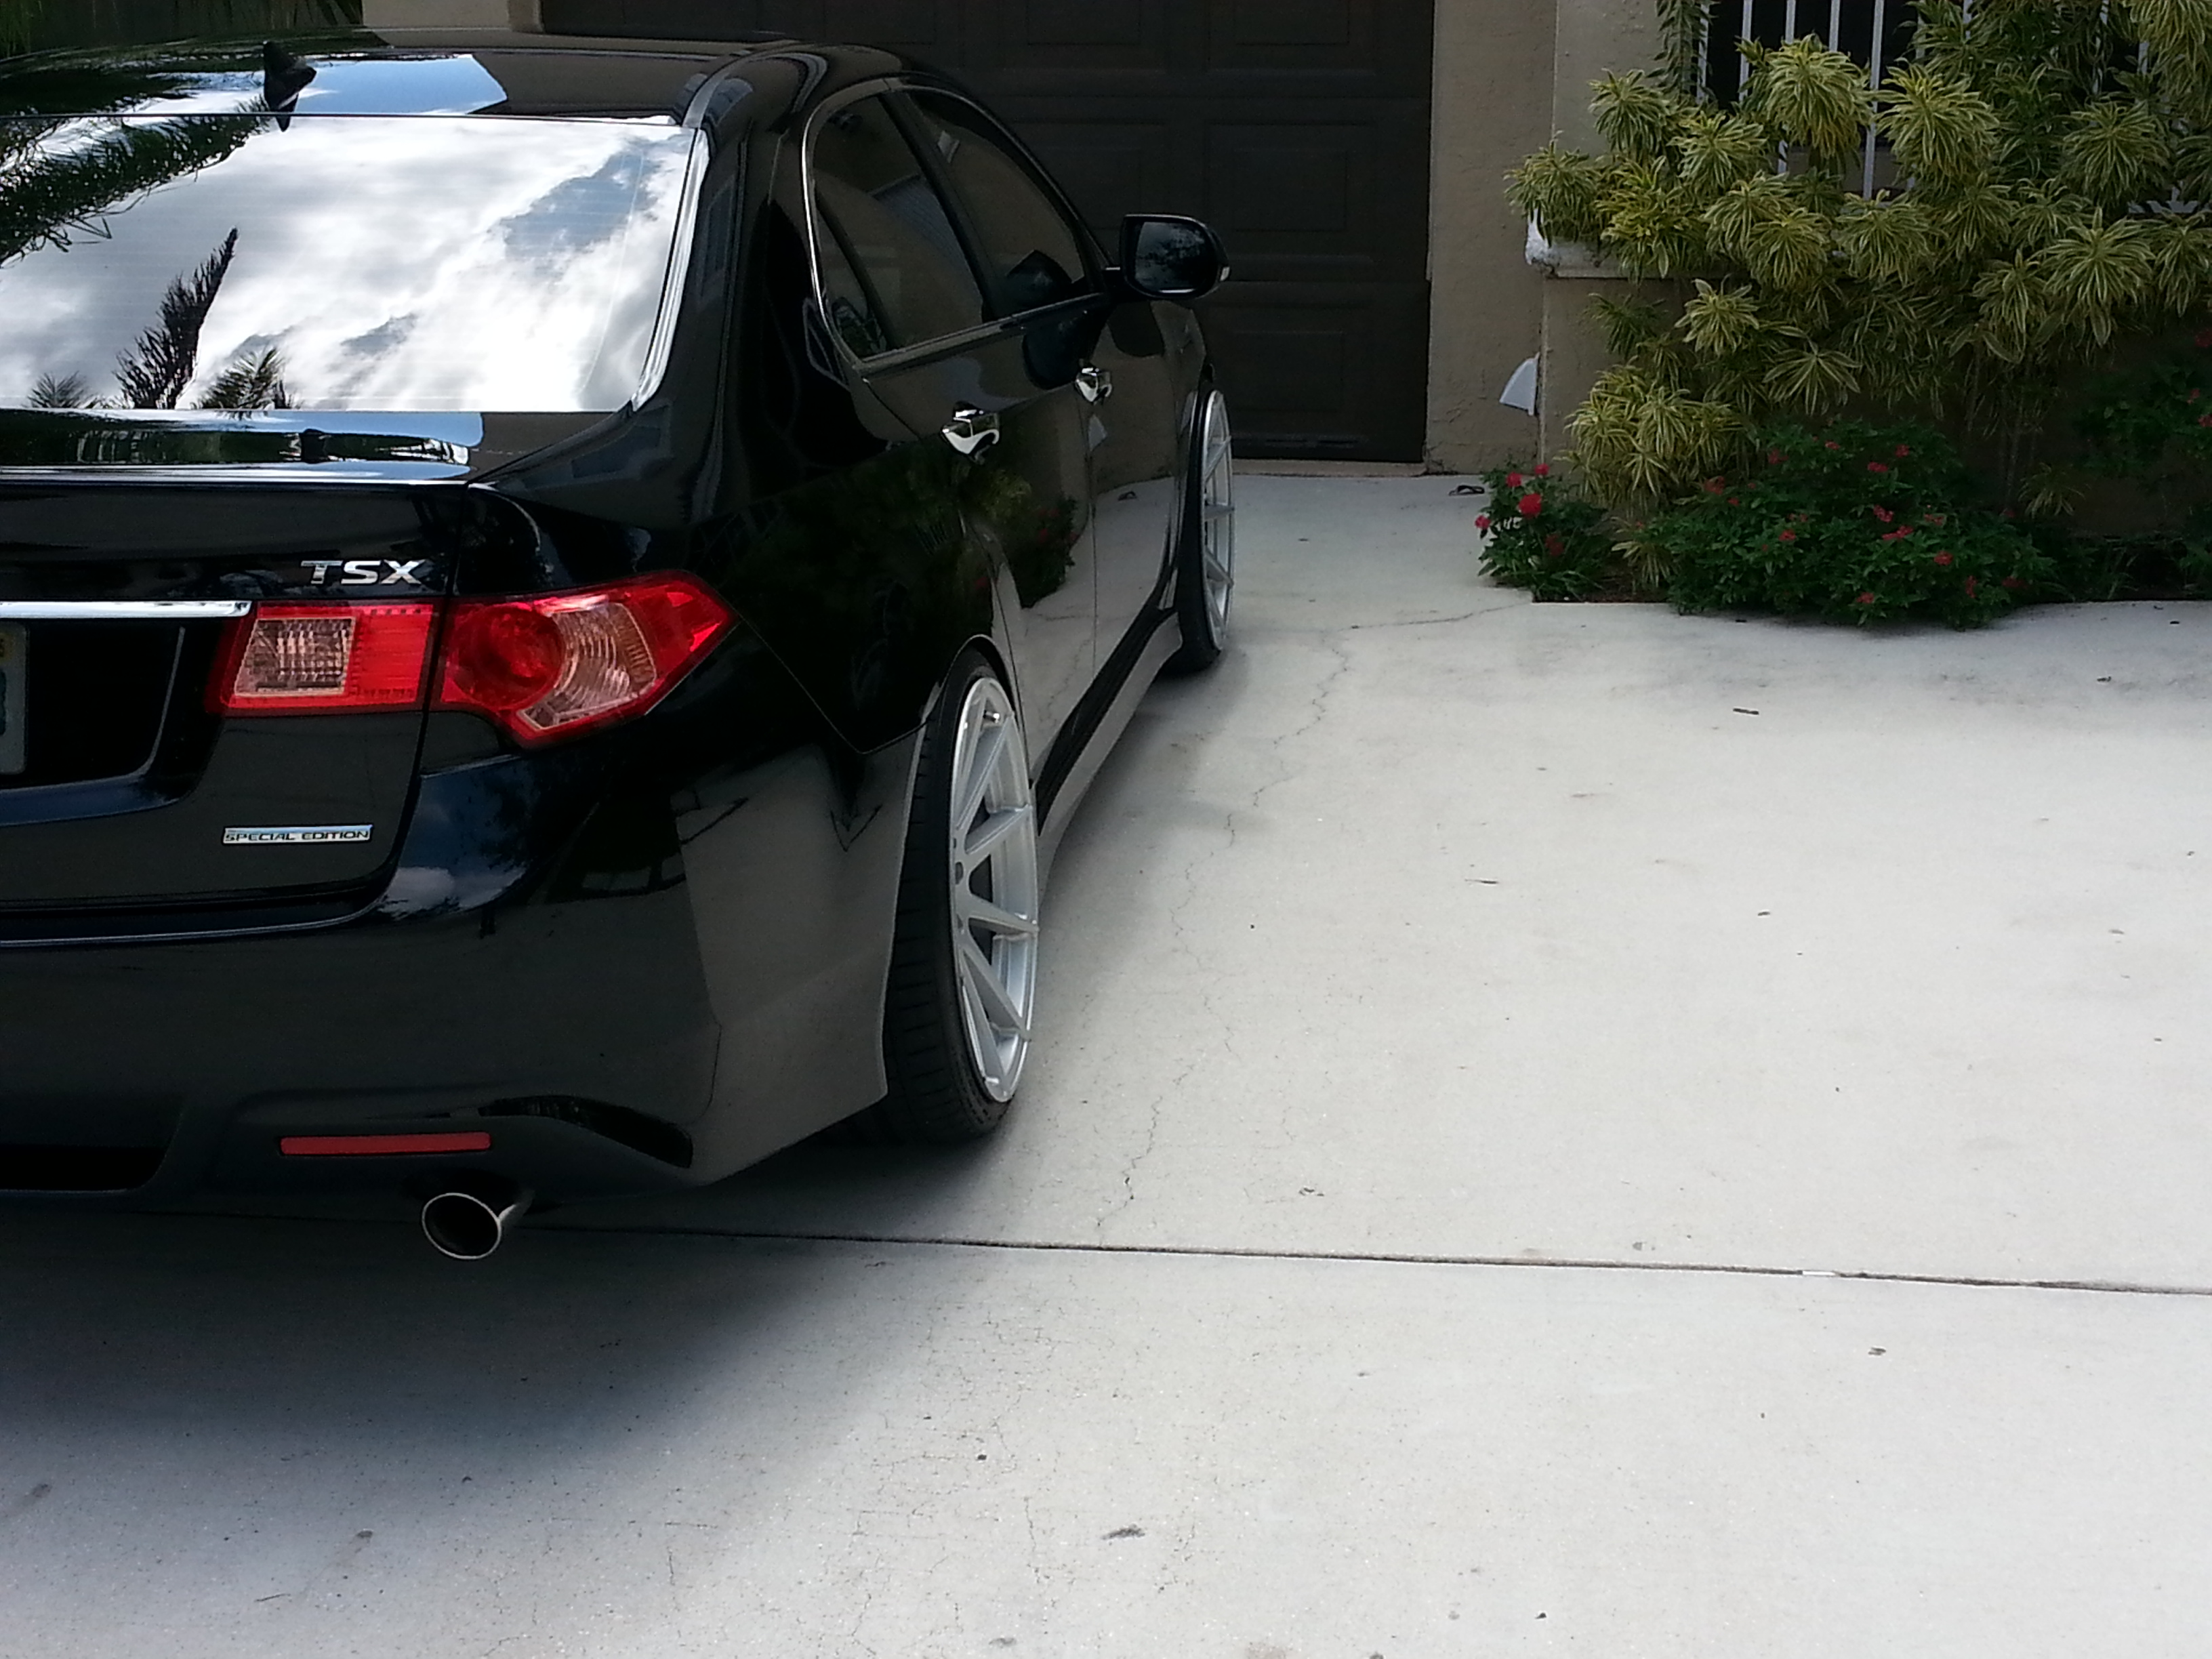 Wheel Gallery Nd Gen Pics And Specs ONLY Page Acura TSX - Acura tsx wheel offset